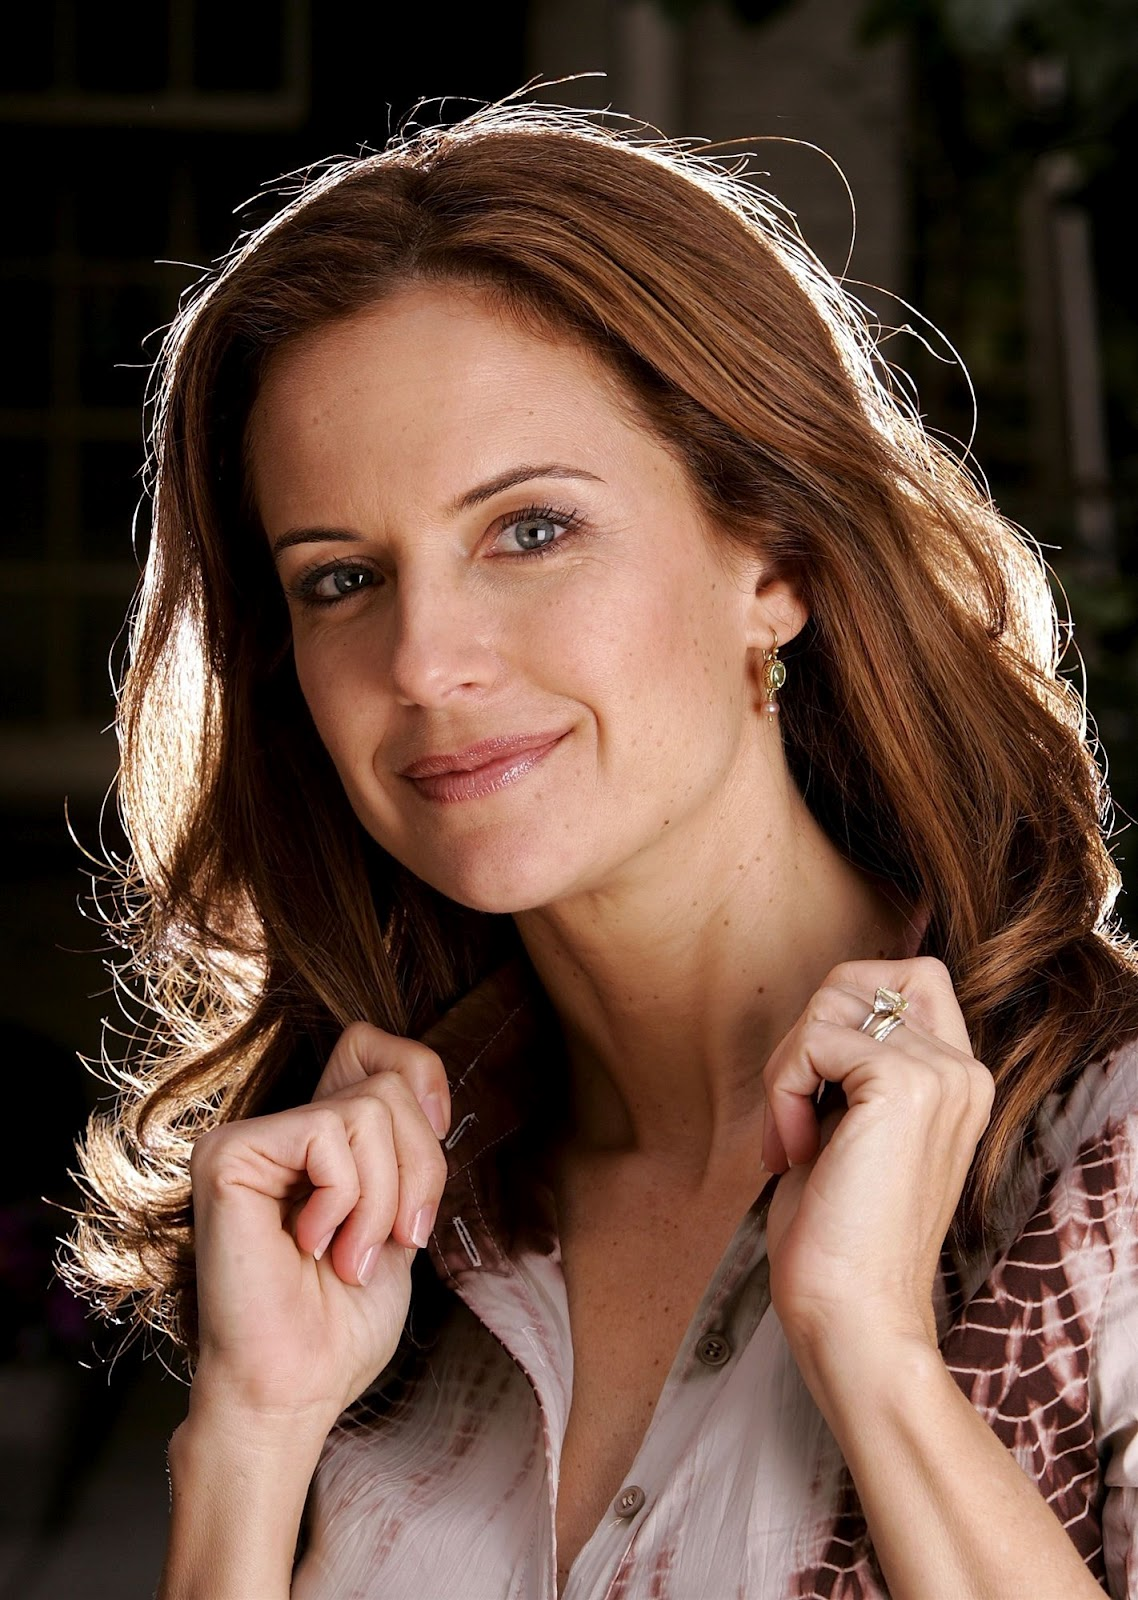 Fitness Girl Iphone Wallpaper Kelly Preston Pictures Gallery Online News Icon